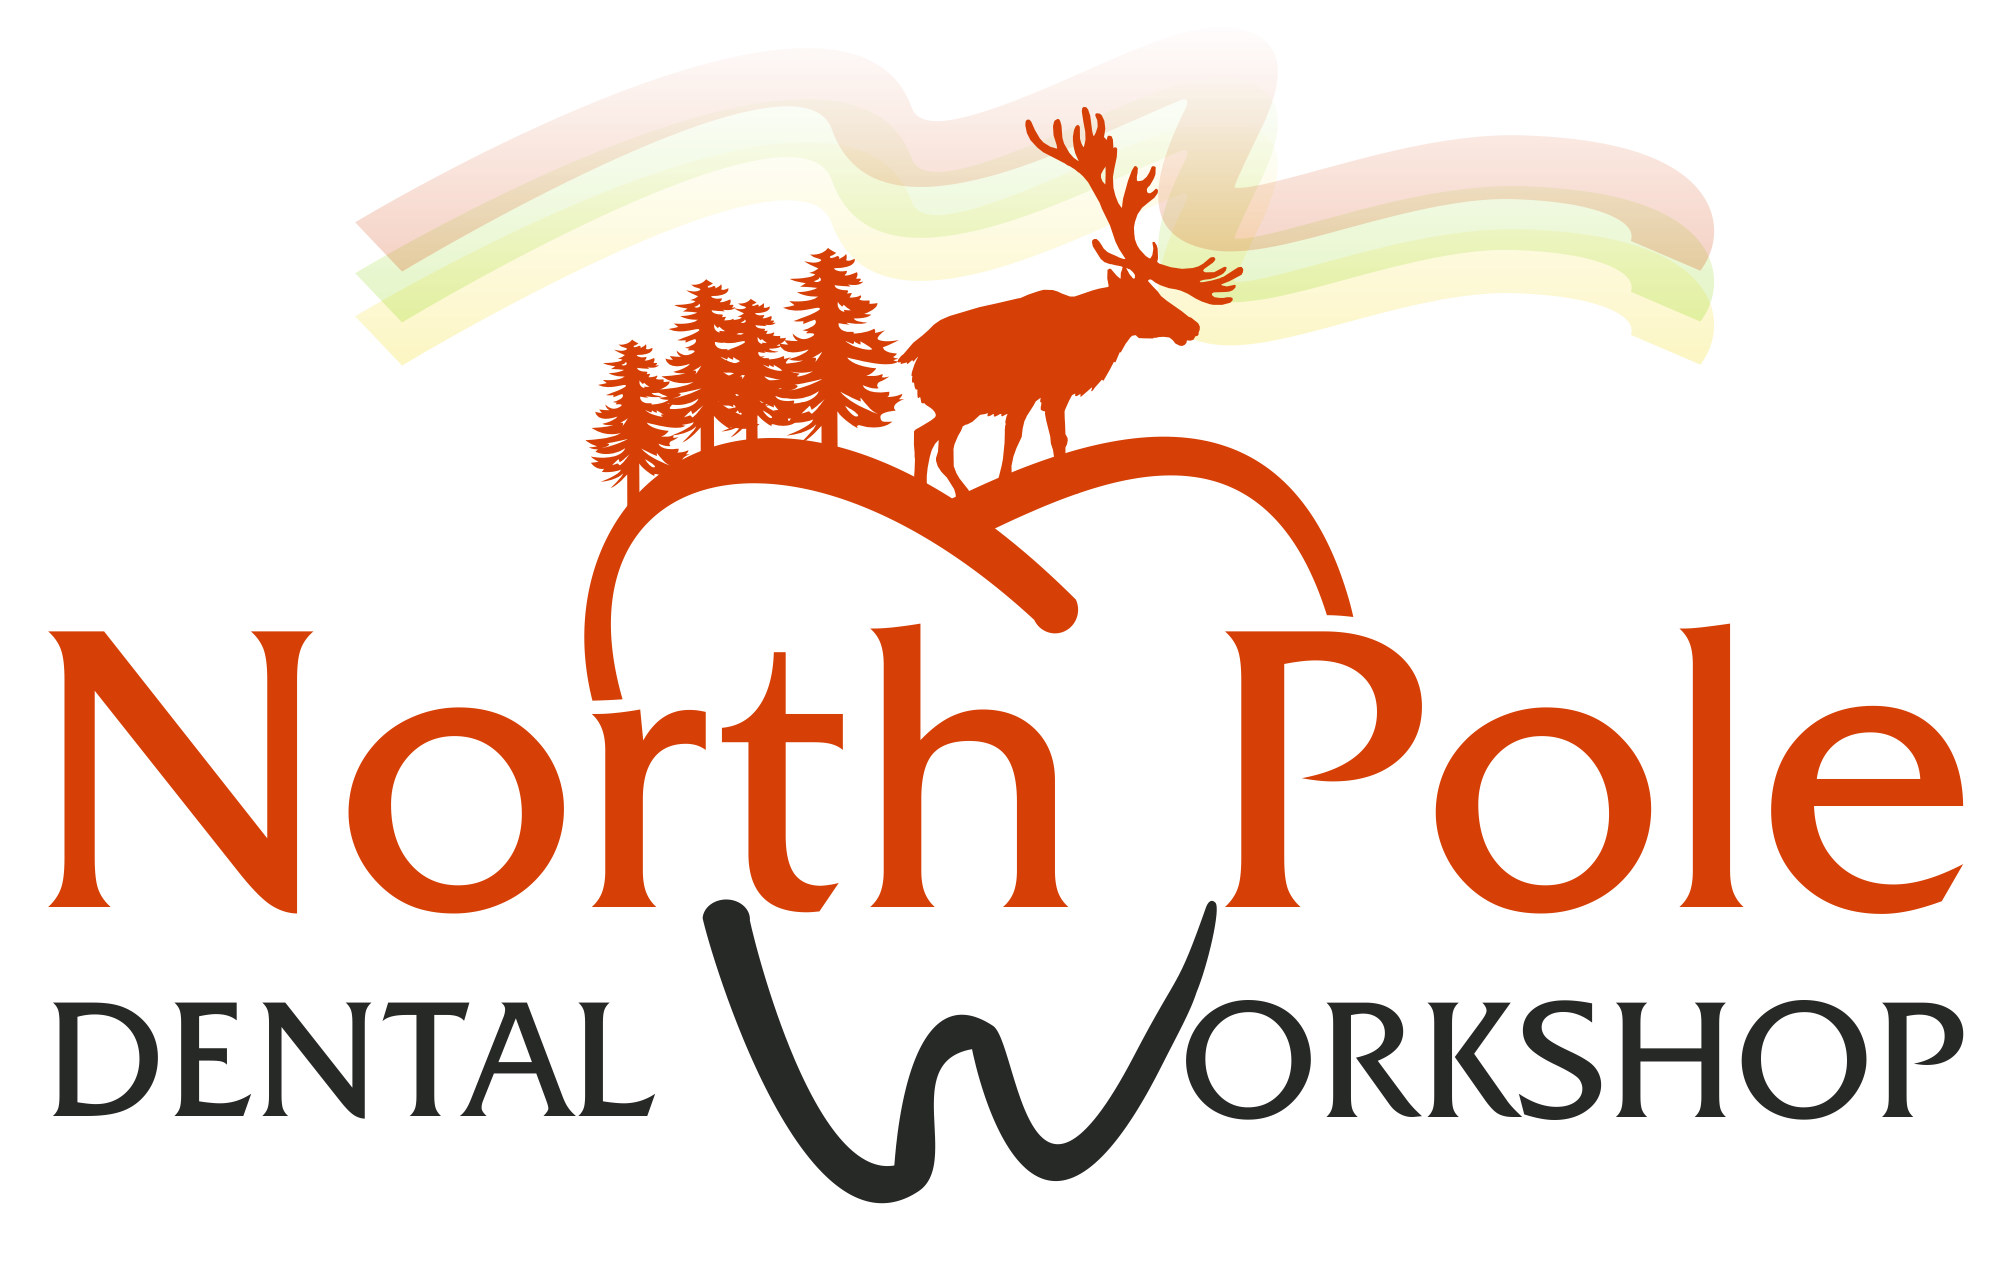 northpoledental.com